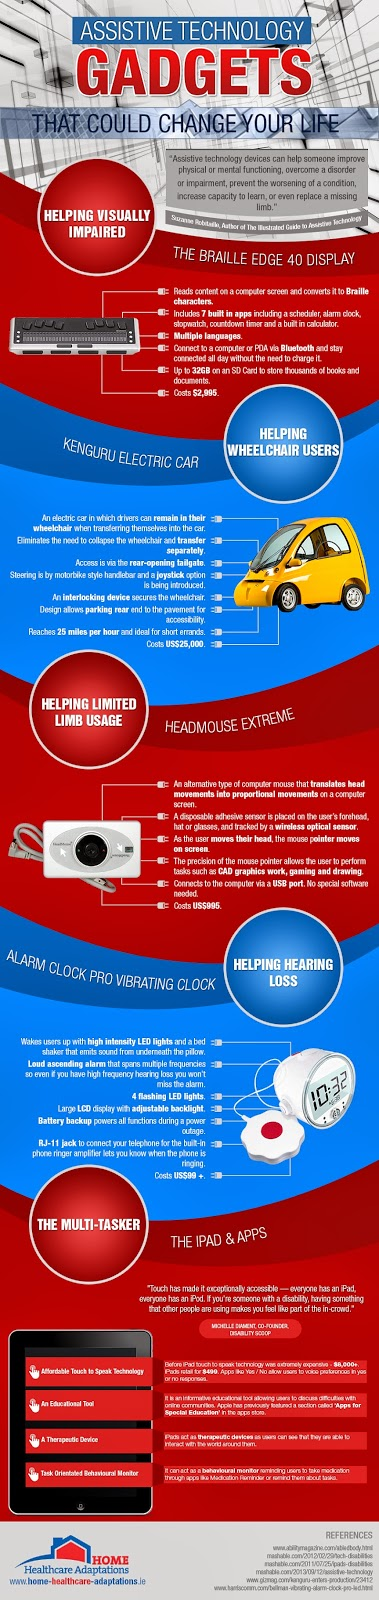 infographic titled assistive technology gadgets that could change your life